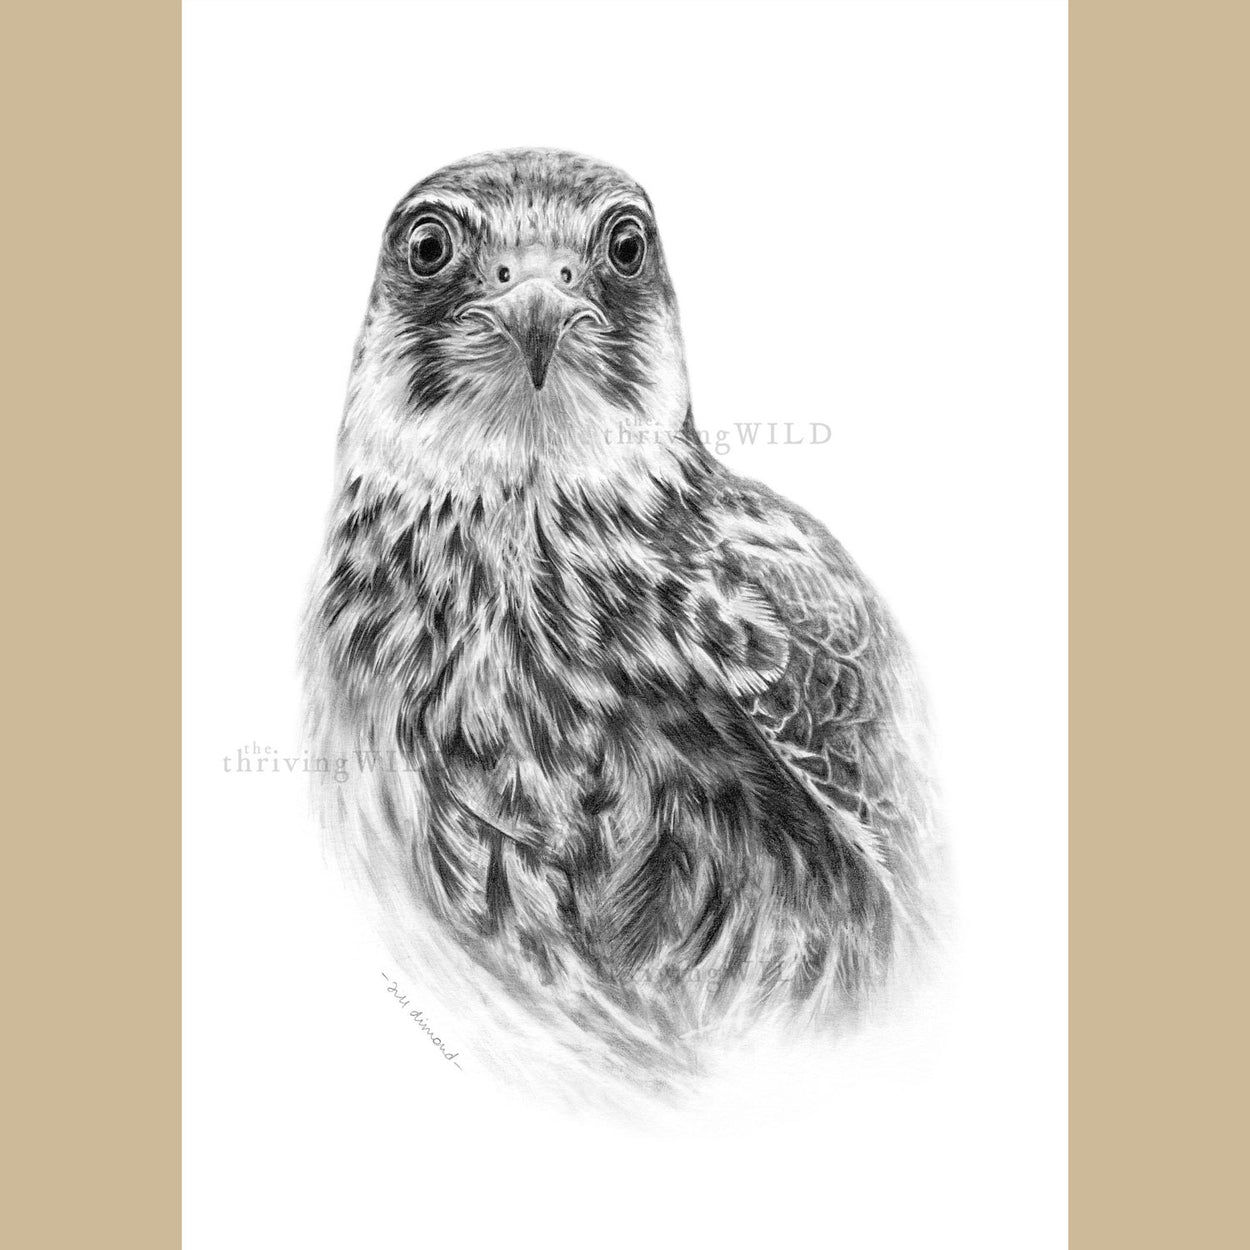 Hobby Bird of Prey Pencil Drawing - The Thriving Wild - Jill Dimond